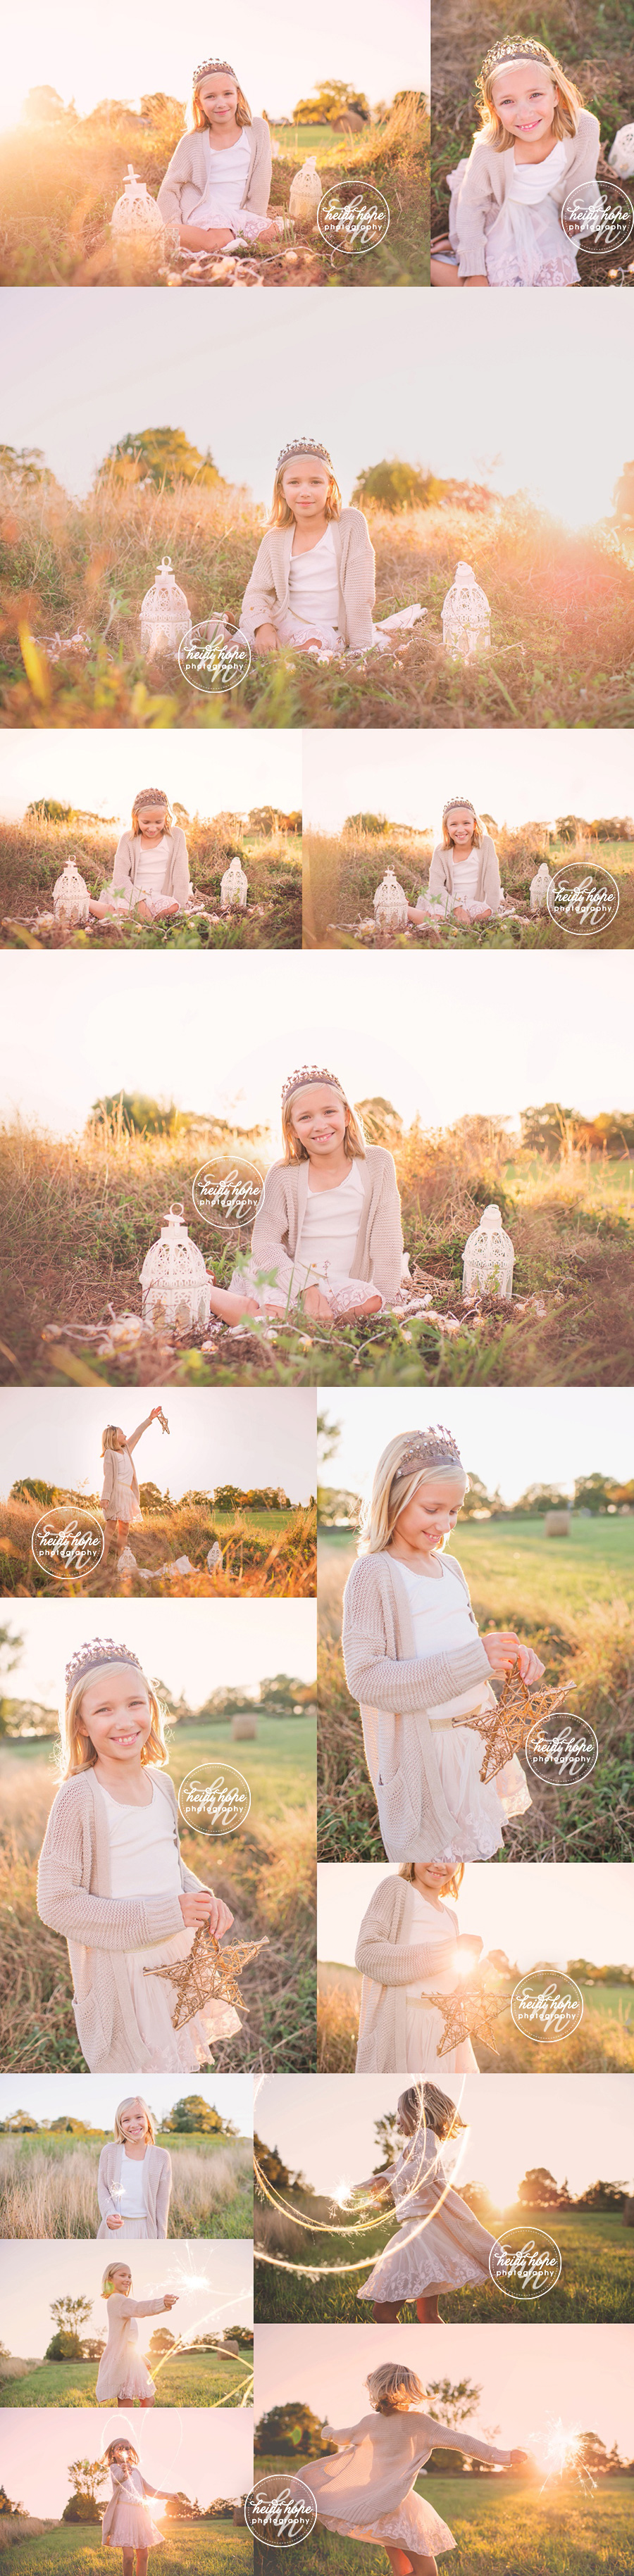 golden-hour-sunset-session-in-a-field-with-boston-photographer